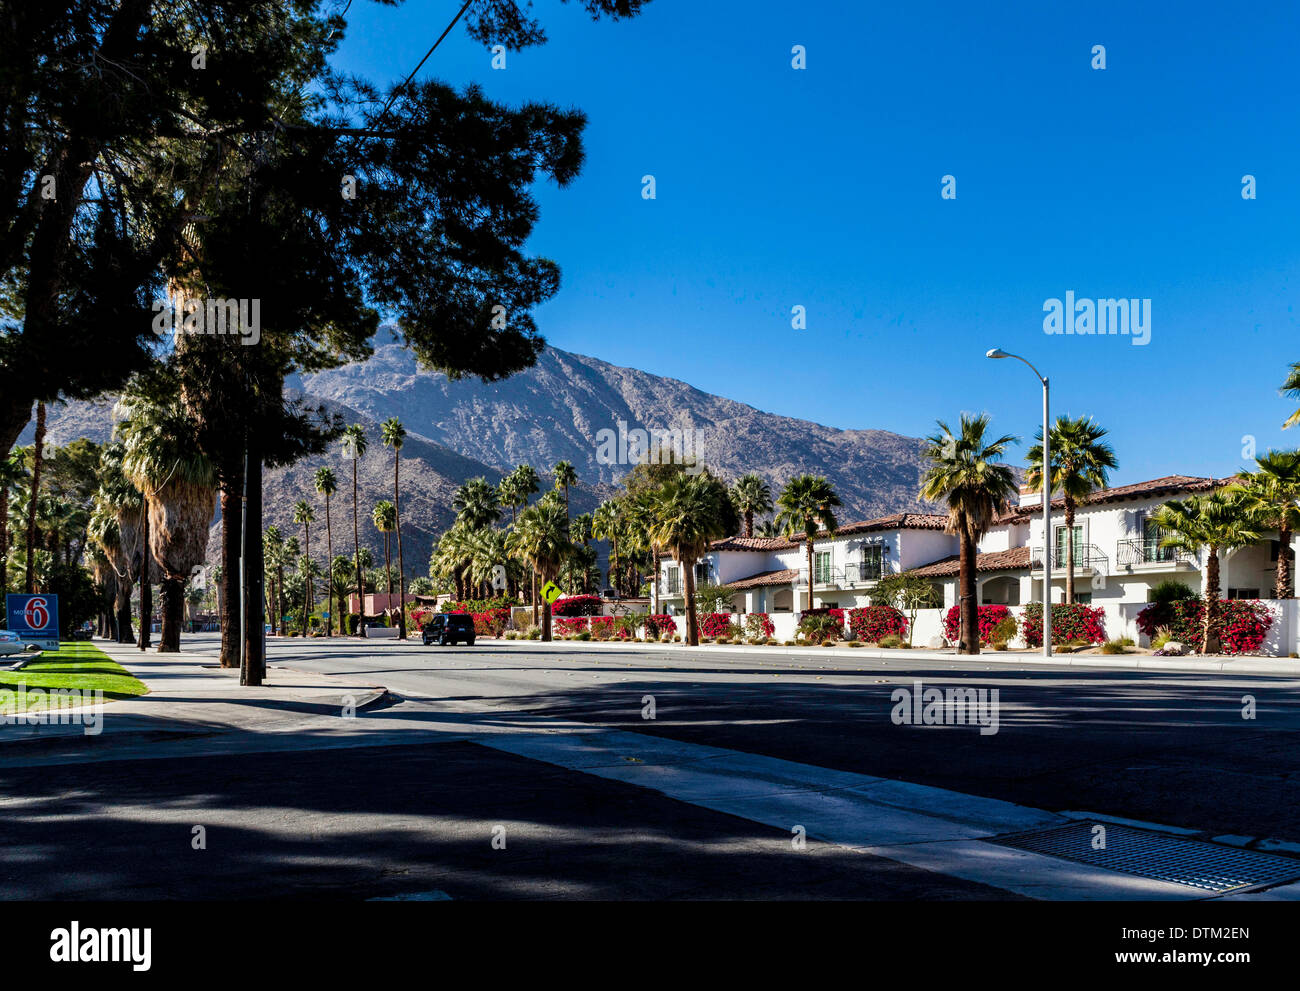 Condominiums bedecked with Bougainvillea in Palm Springs California February 2014 on Palm Canyon Drive Stock Photo